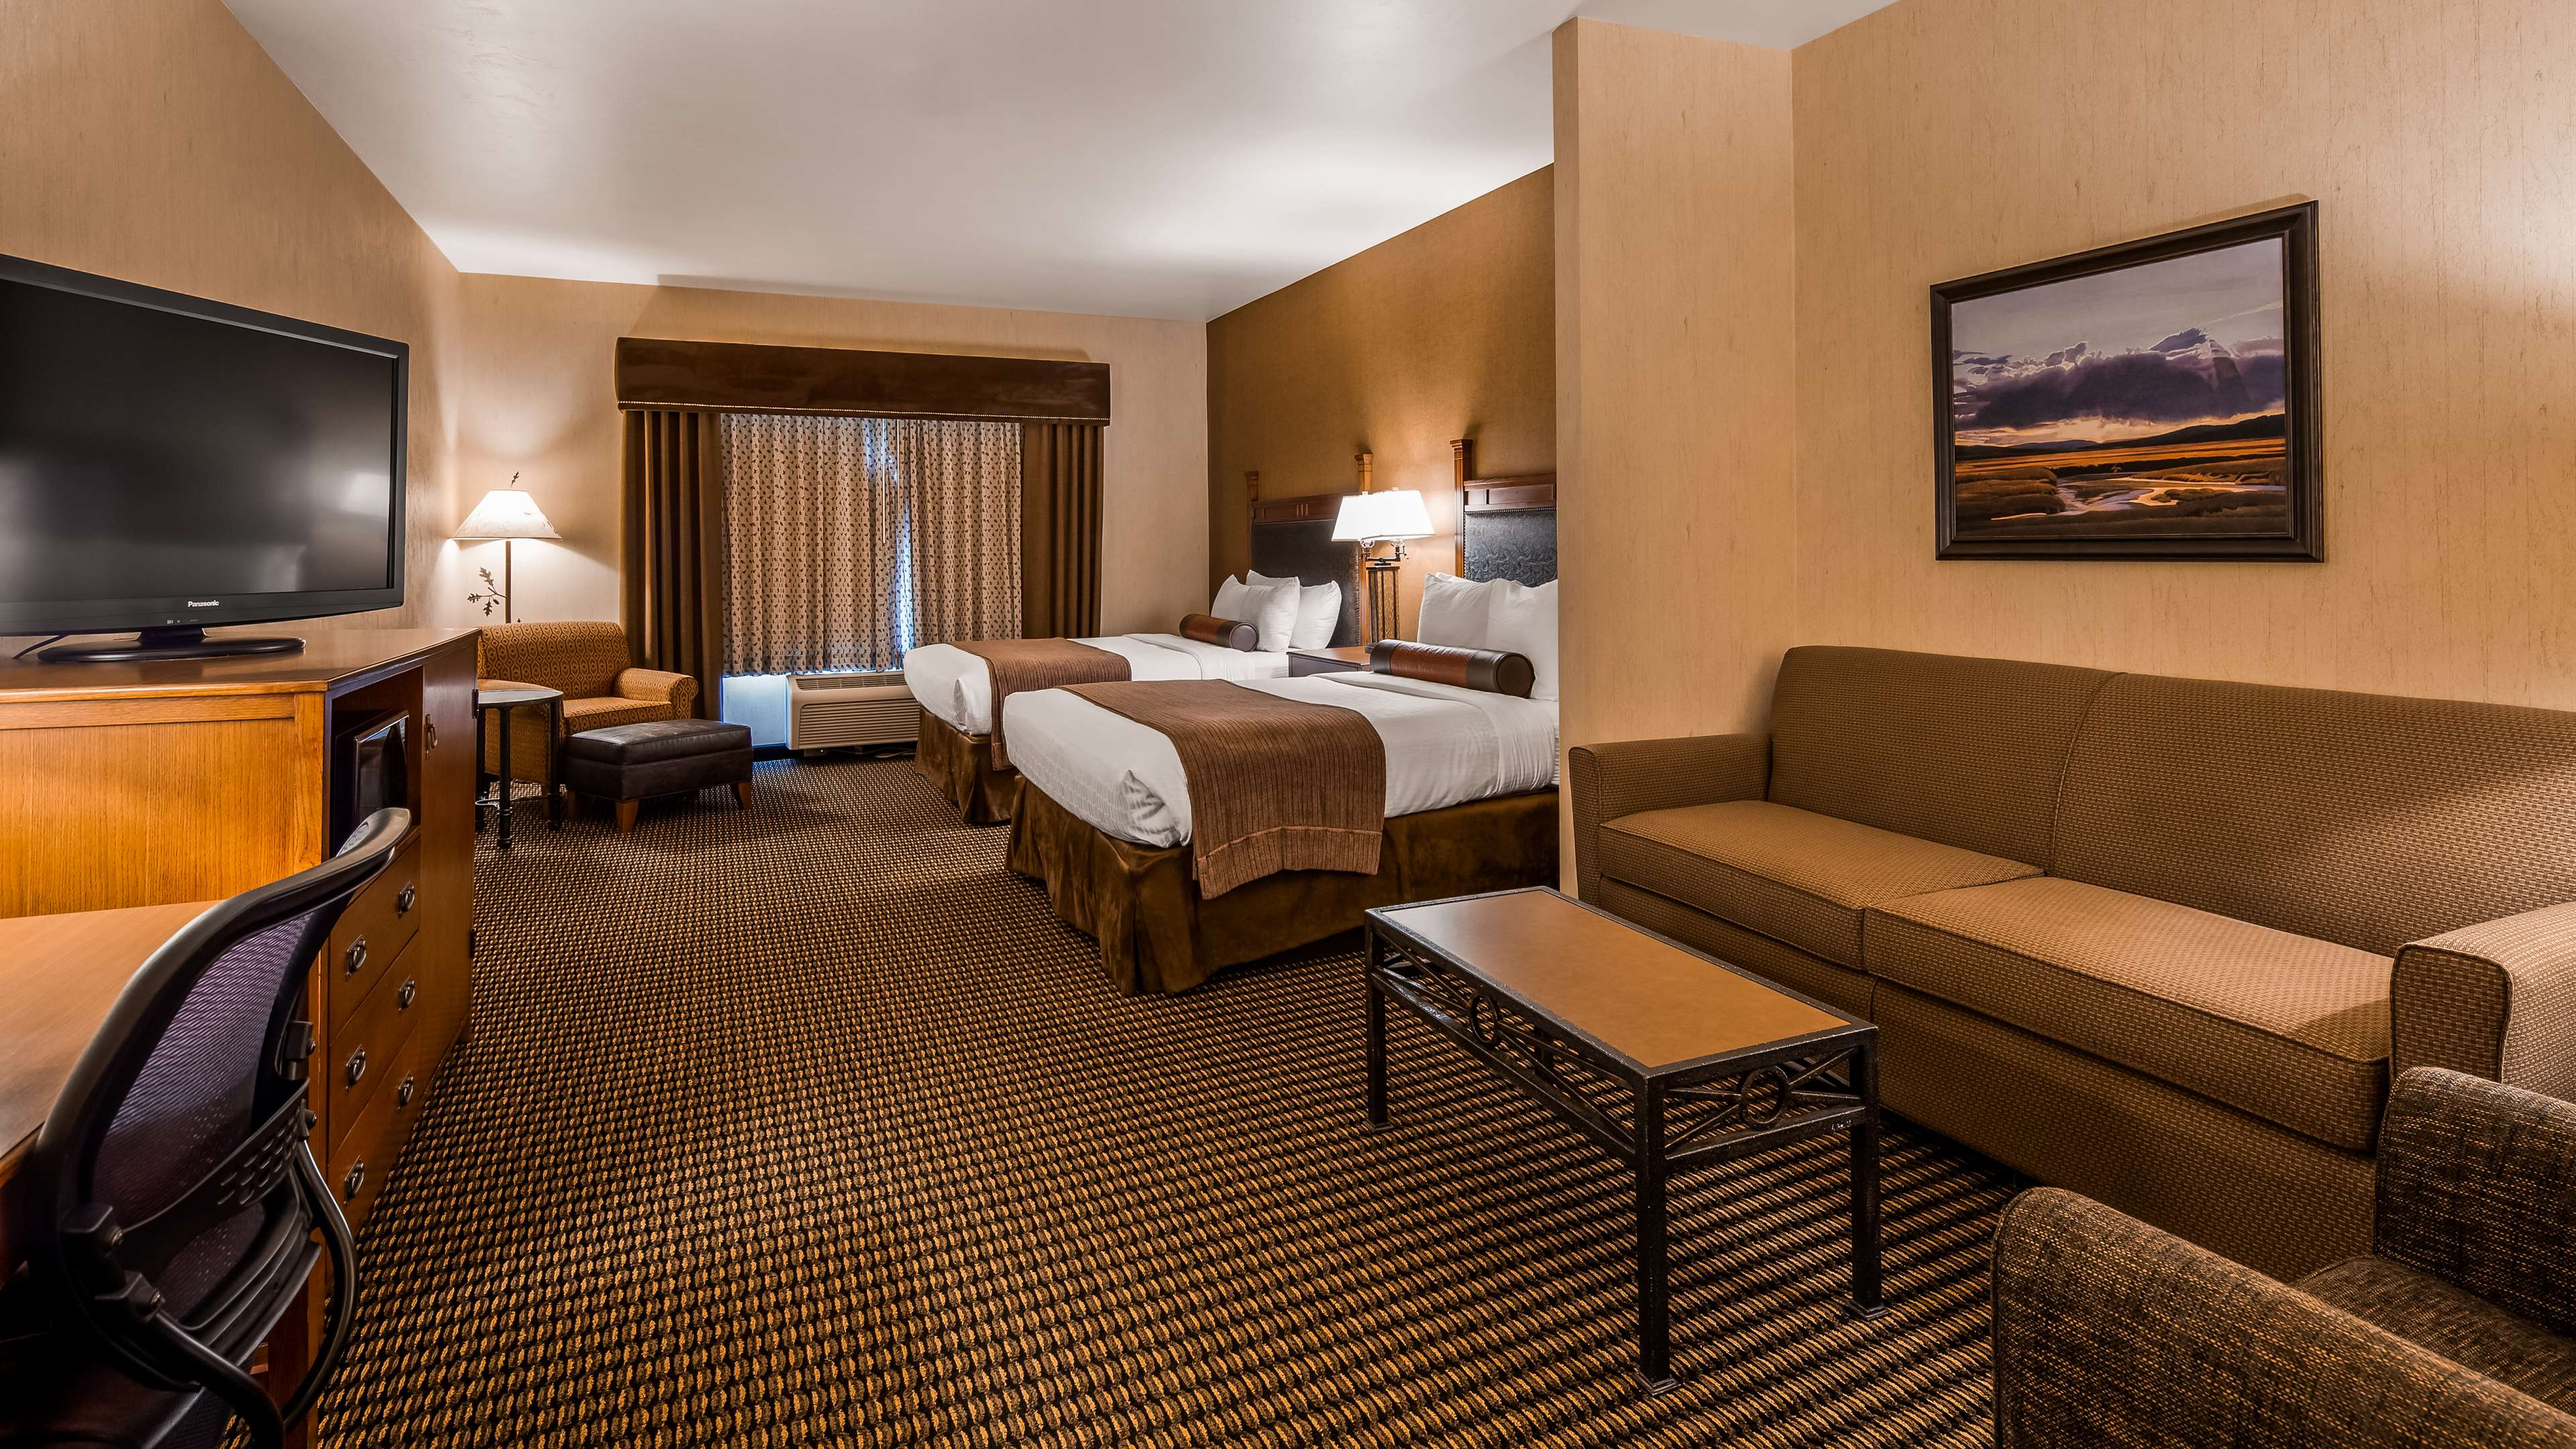 Best Western Plus Bryce Canyon Grand Hotel image 15